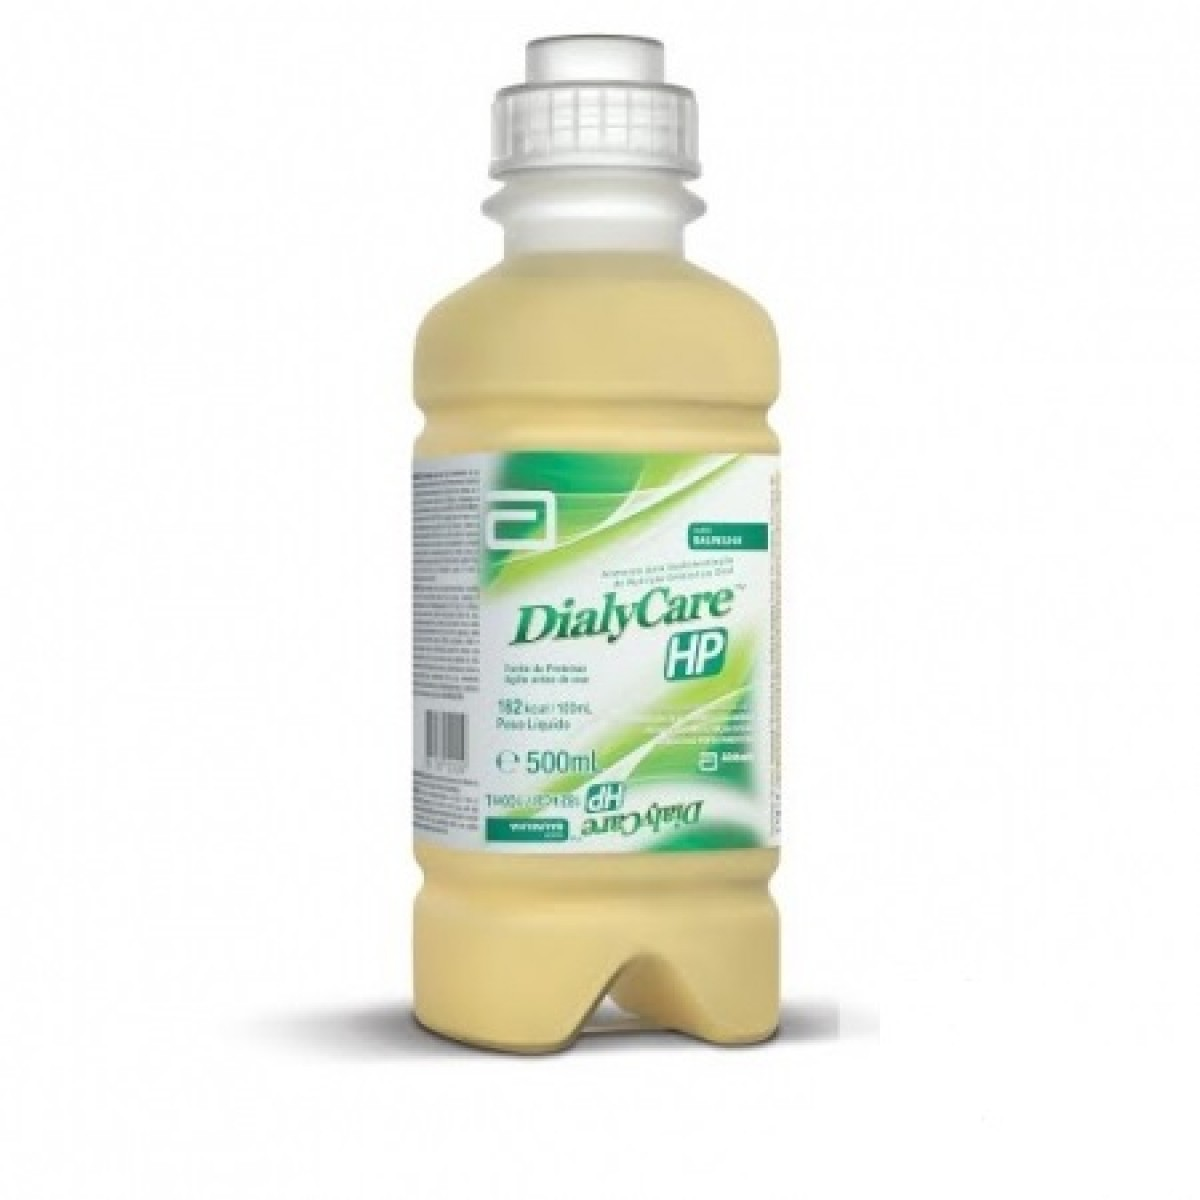 DIALY CARE RTH - SF 500ML - (ABBOTT)